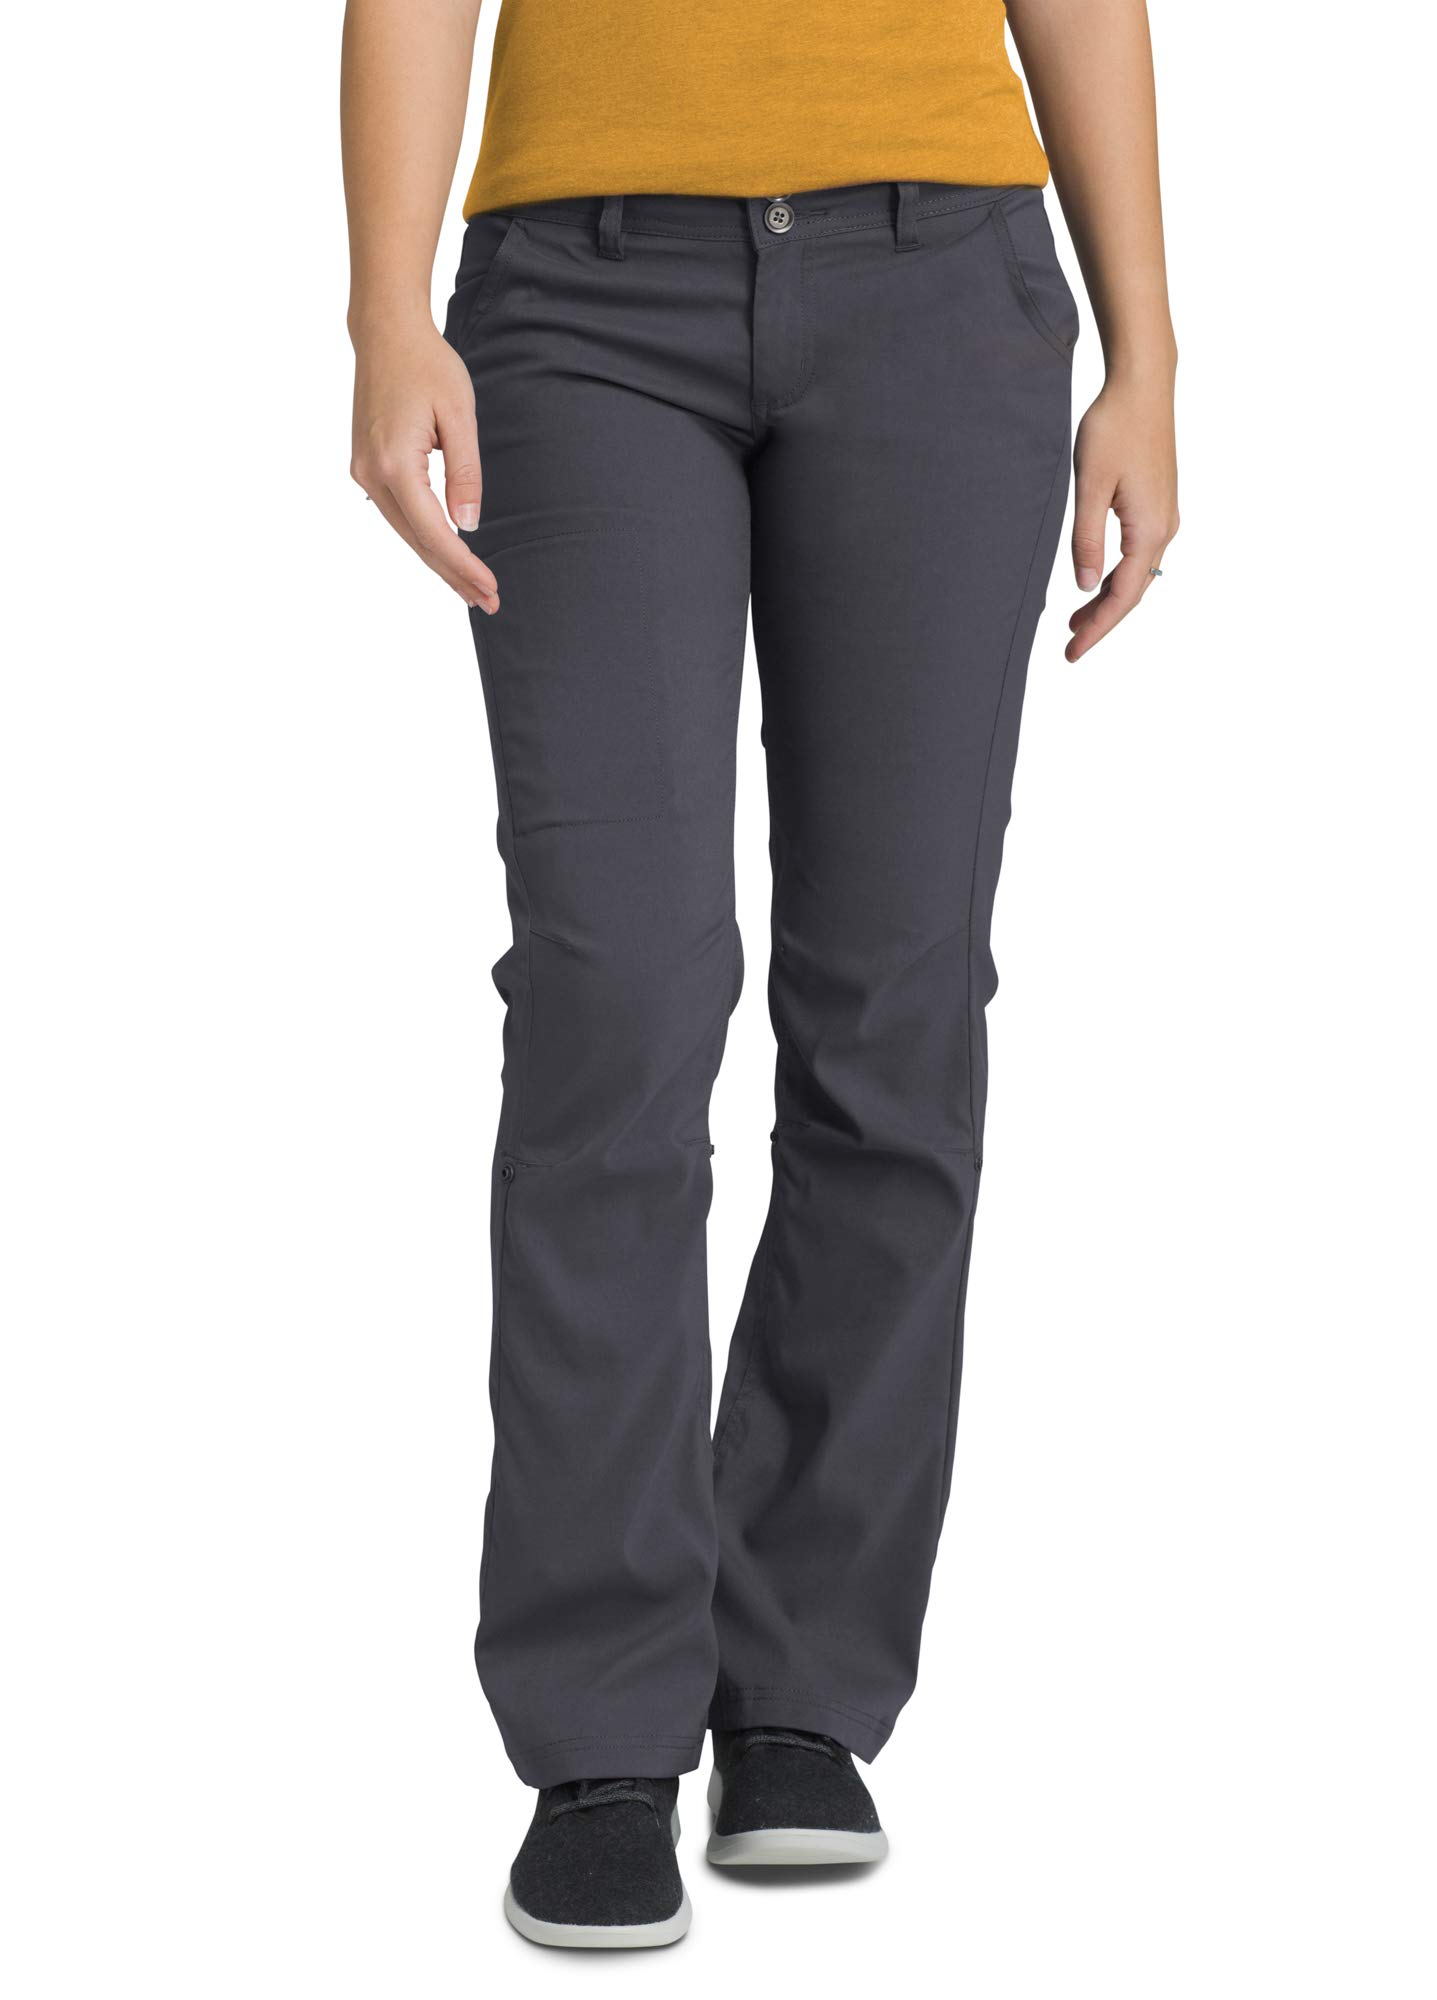 prAna - Women's Halle Roll-up, Water-Repellent Stretch Pants for Hiking and Everyday Wear, Regular Inseam, Coal, 12 by prAna